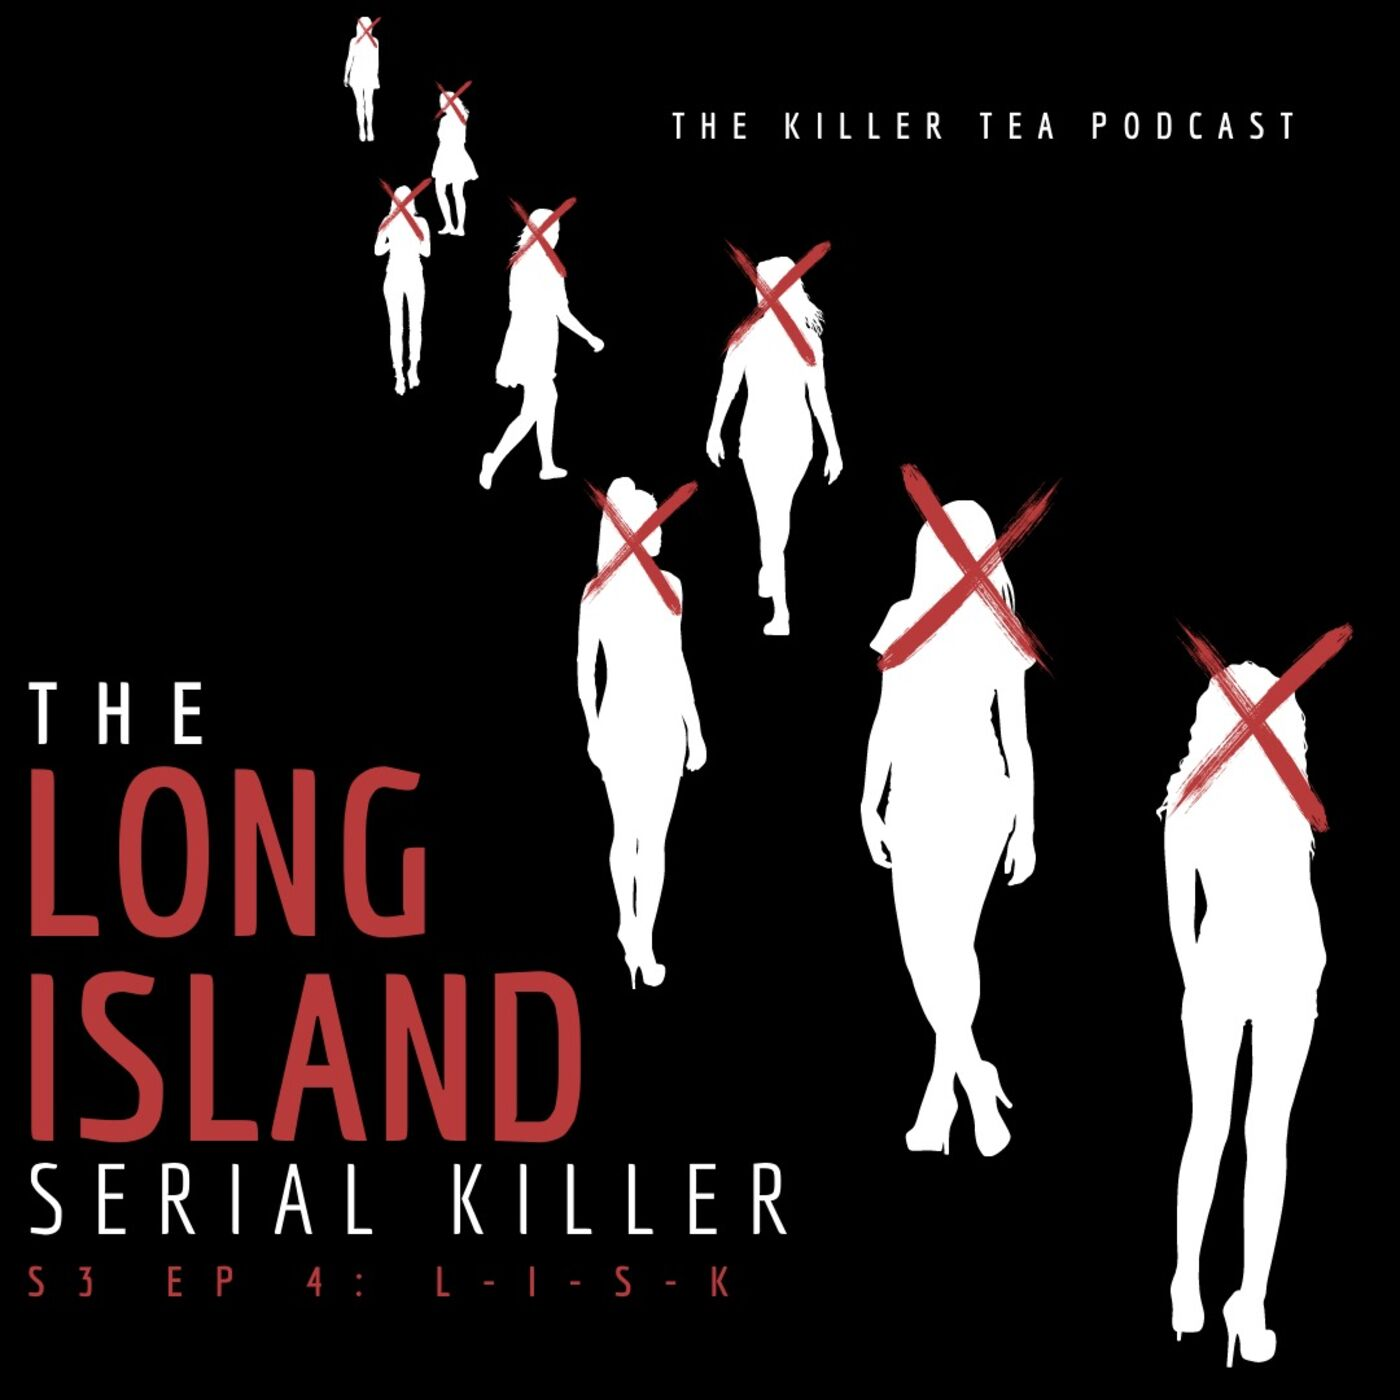 S3 Ep. 4 UNSOLVED    Long Island Serial Killer